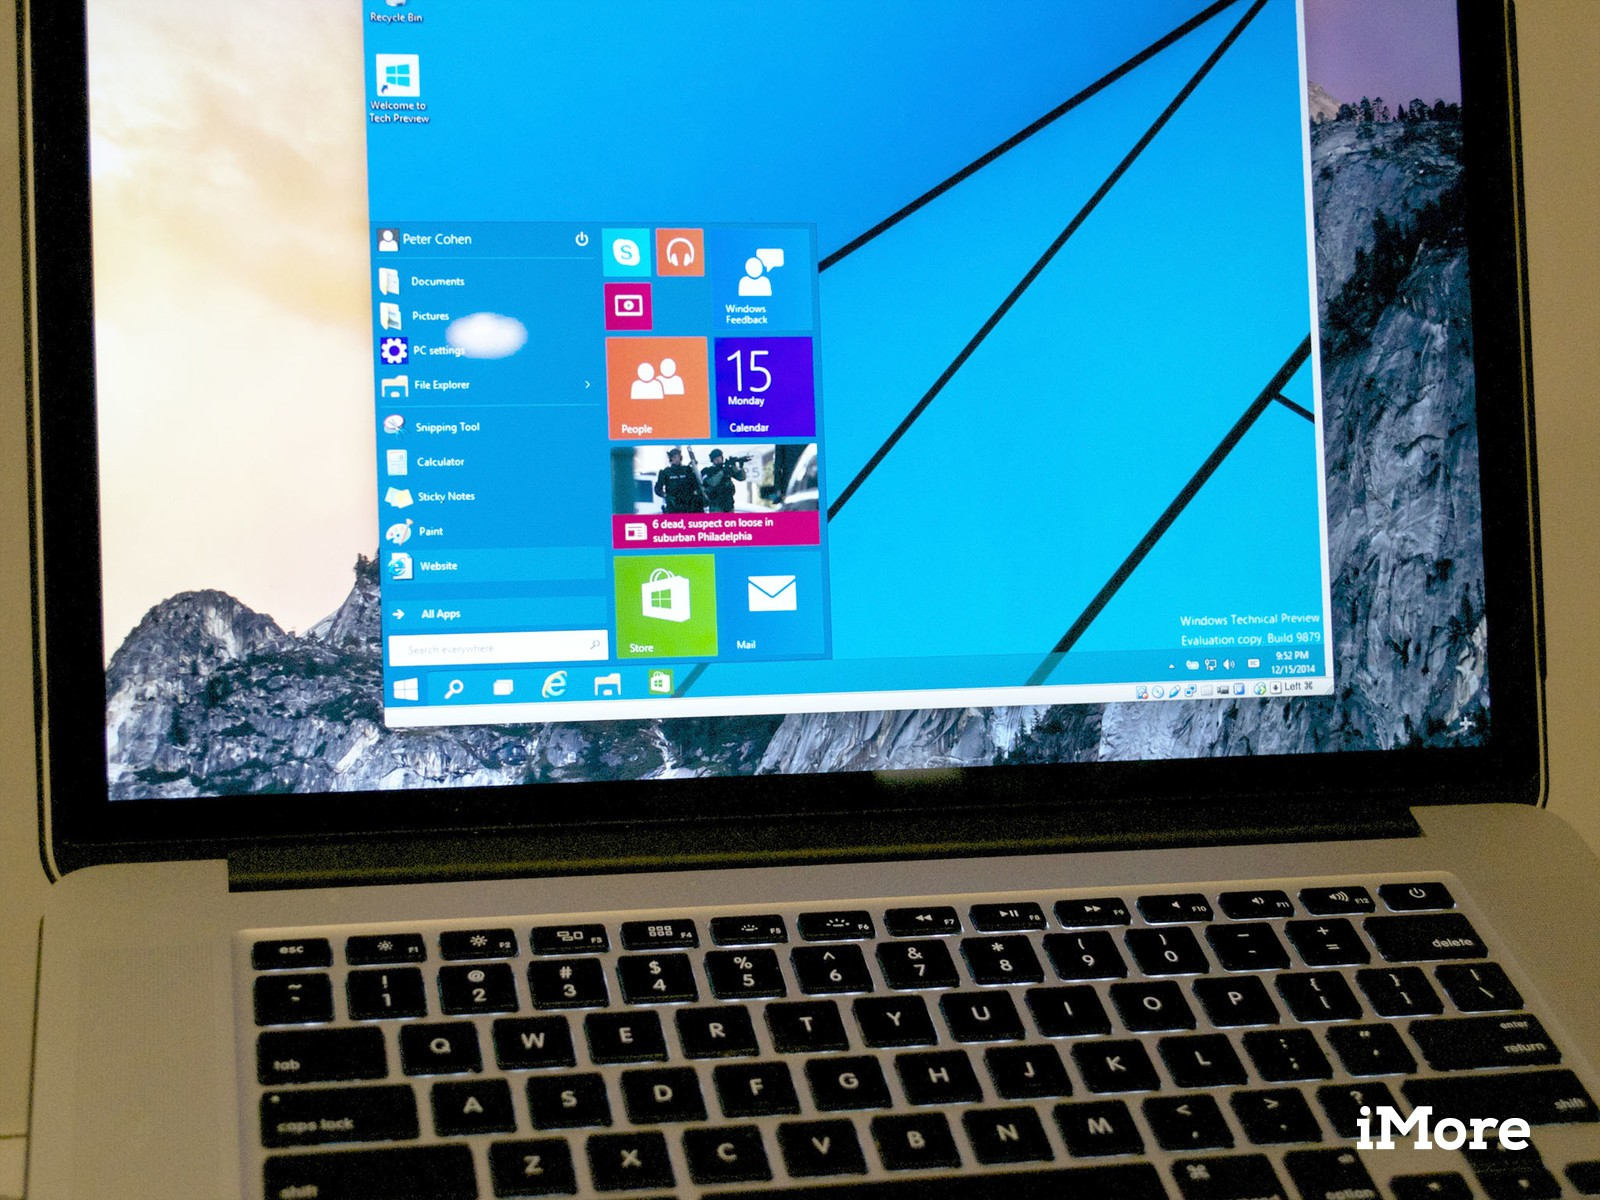 How To Install Windows  On The Mac Without Spending A Dime